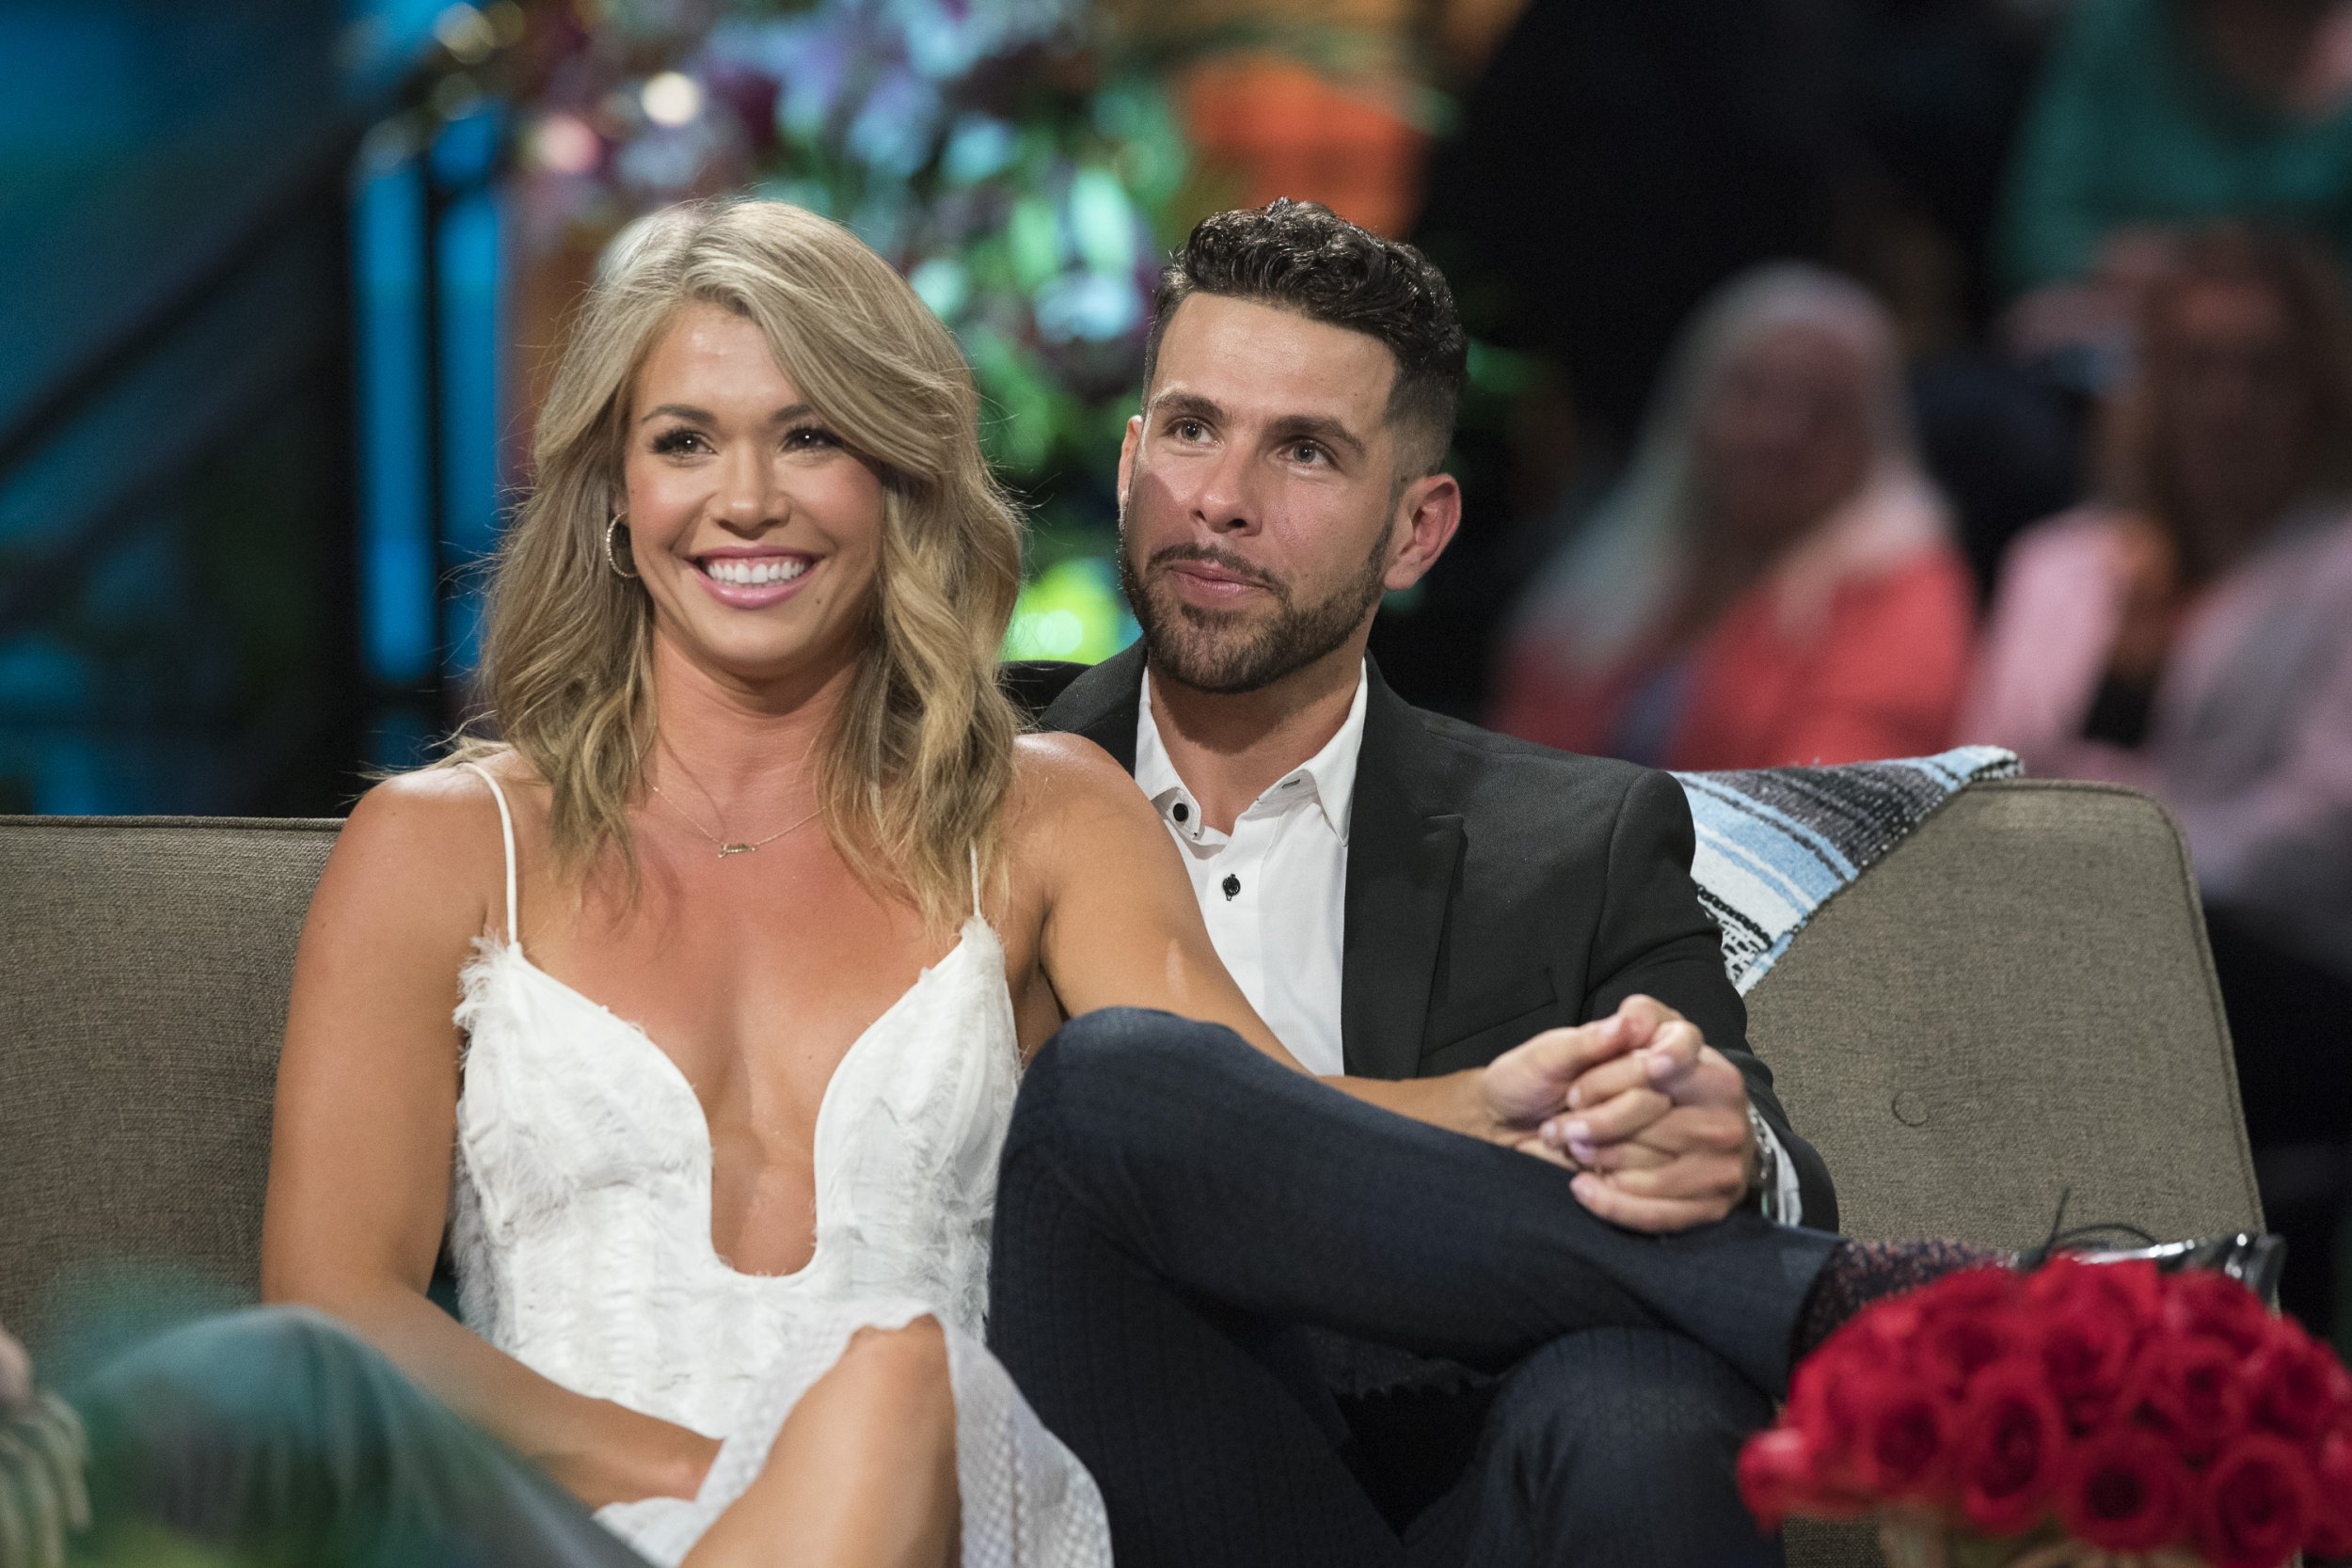 Will 'Bachelor In Paradise' Stars Chris Randone And